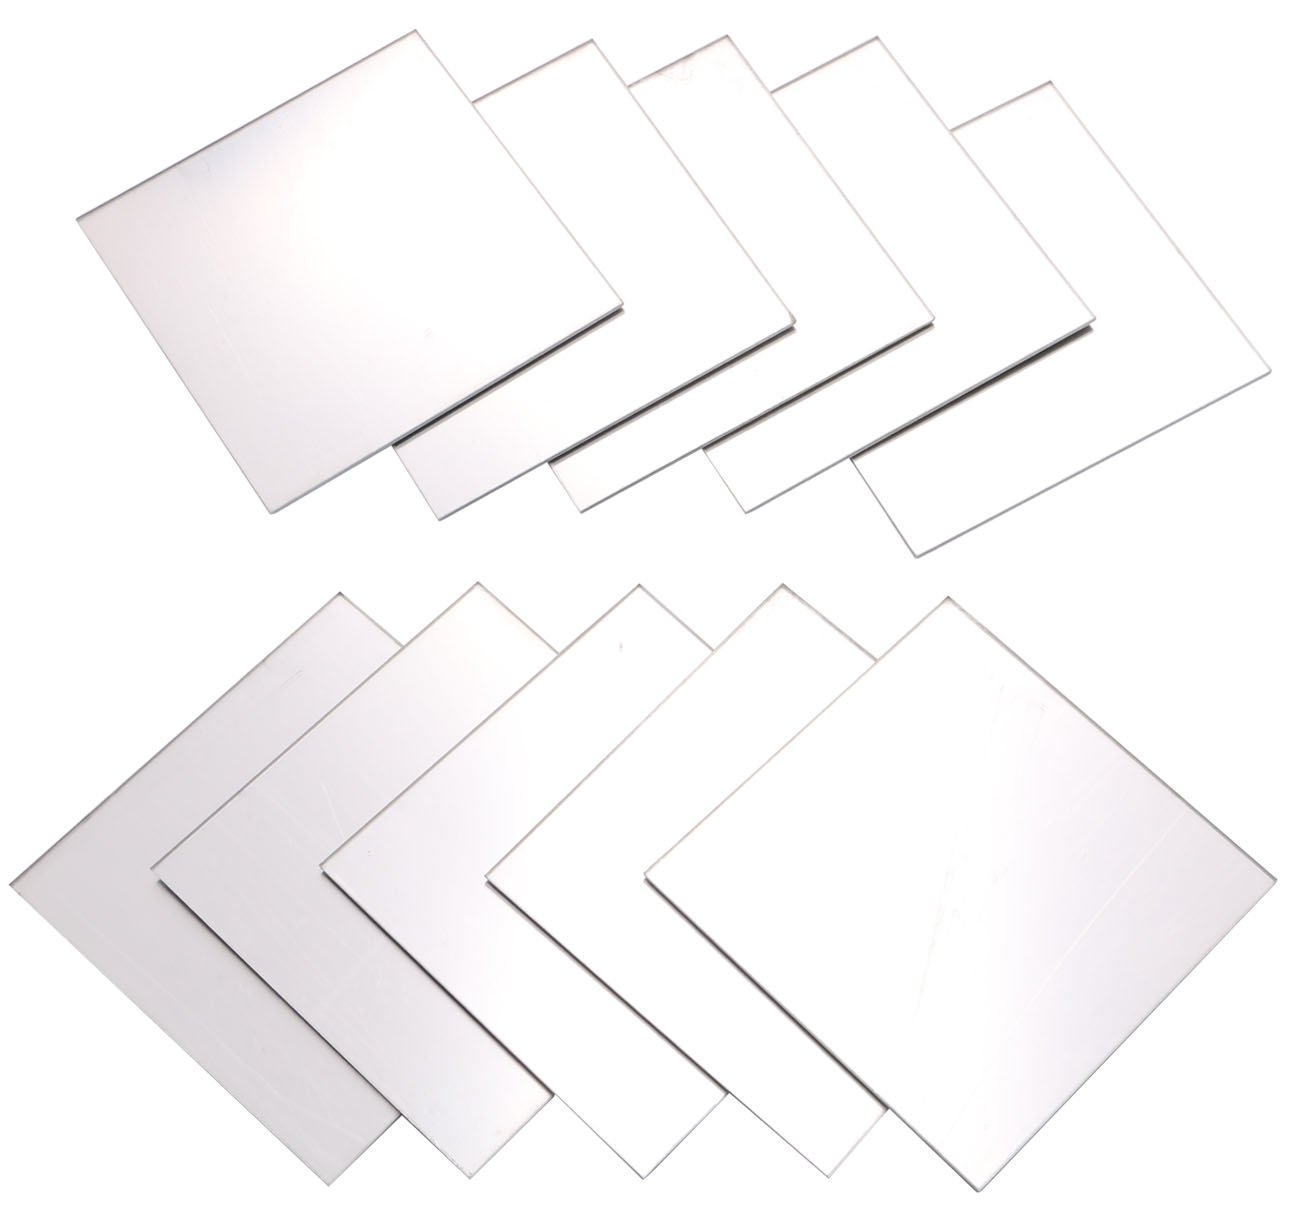 3.9x3.9 Square Plastic Module Plate for DIY Model Project Picture Frame Mirror Material Supplies by Yeeco 10PCs Mirrored Acrylic Plexiglass Sheet